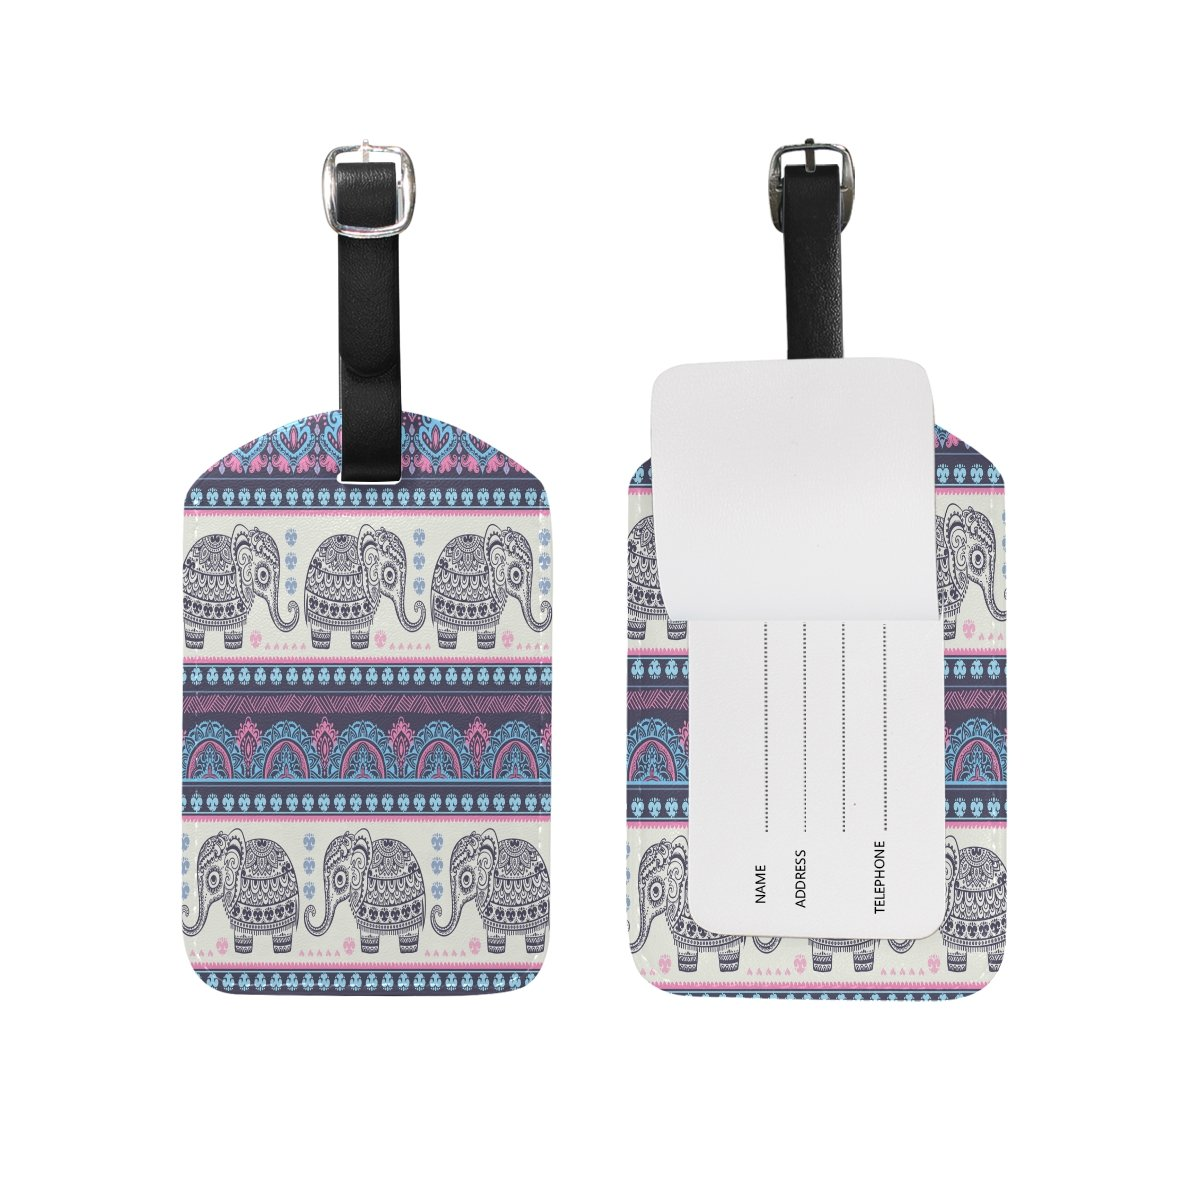 1Pcs Saobao Travel Luggage Tag Vintage Indian Elephant With Tribal Ornaments PU Leather Baggage Suitcase Travel ID Bag Tag